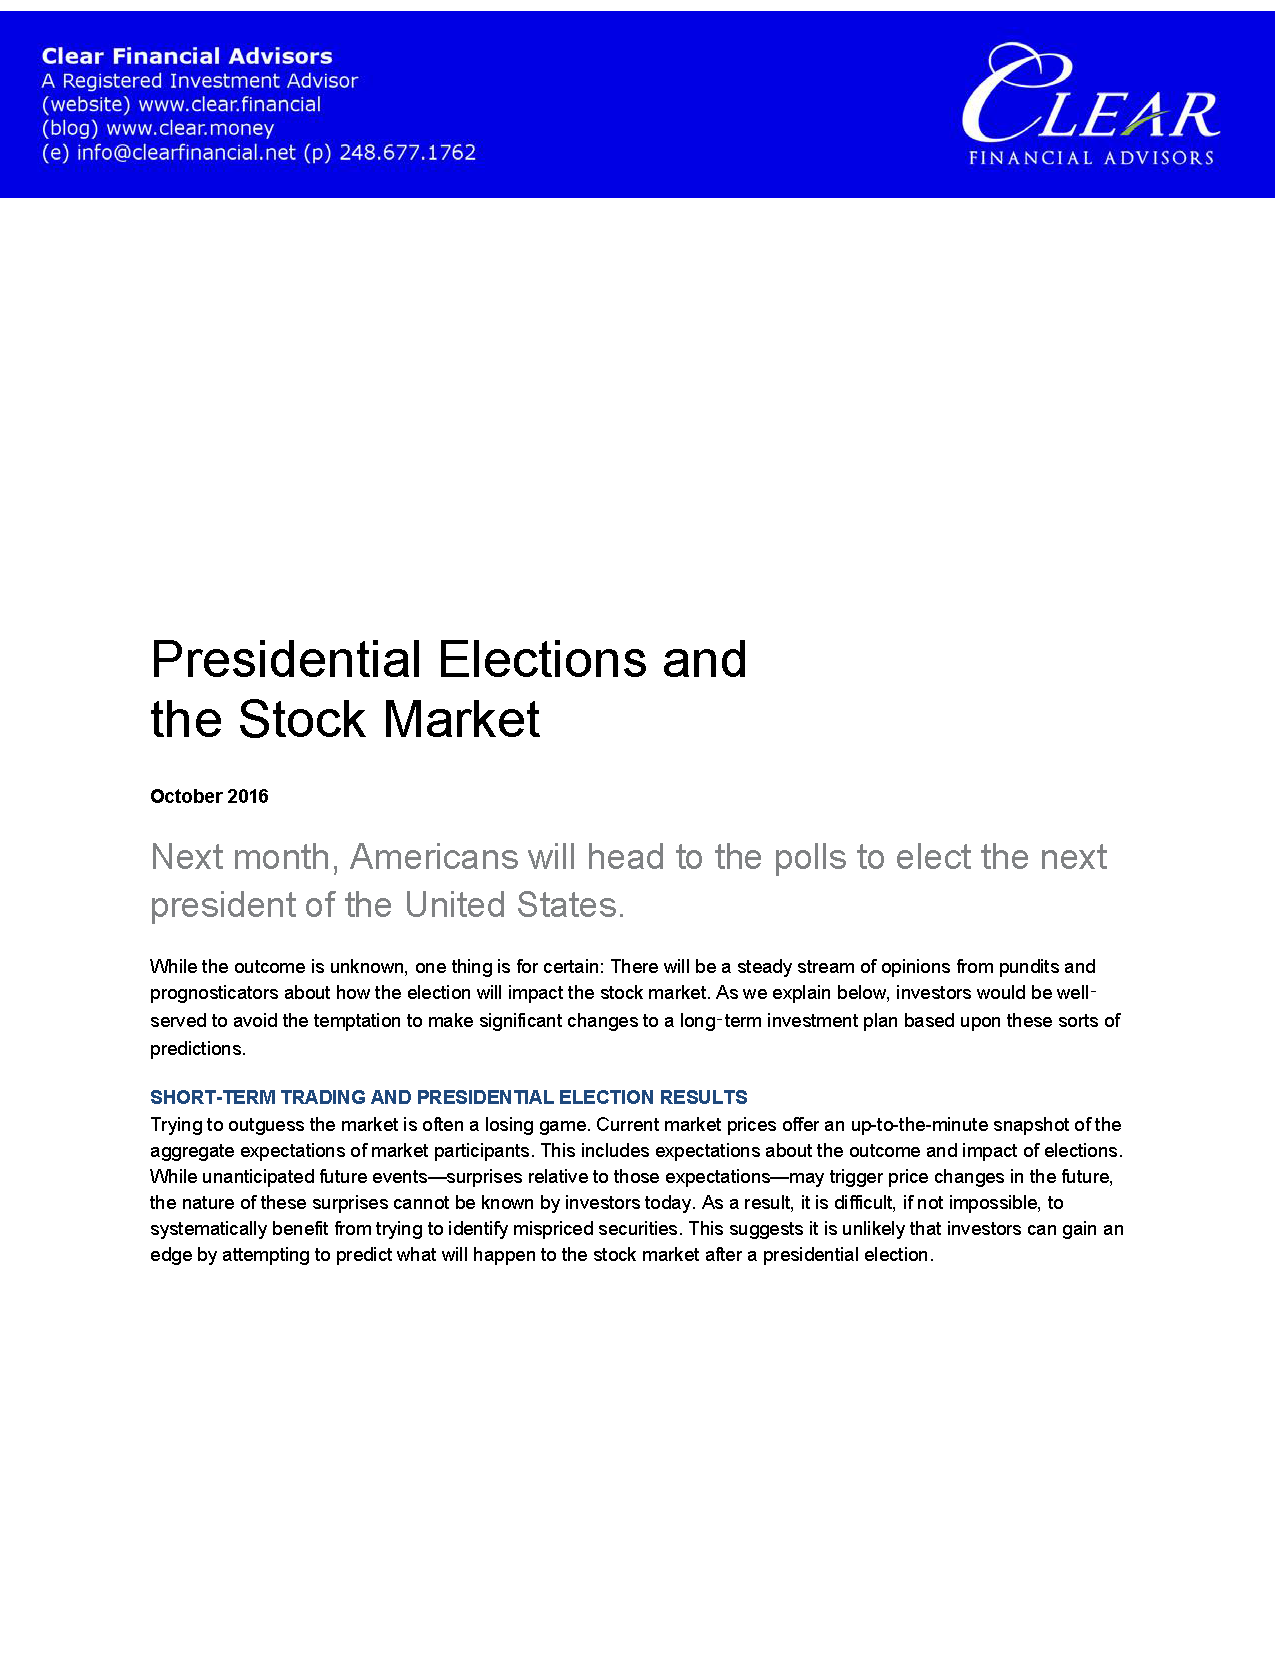 Presidential Elections and the Stock Market_Page_1